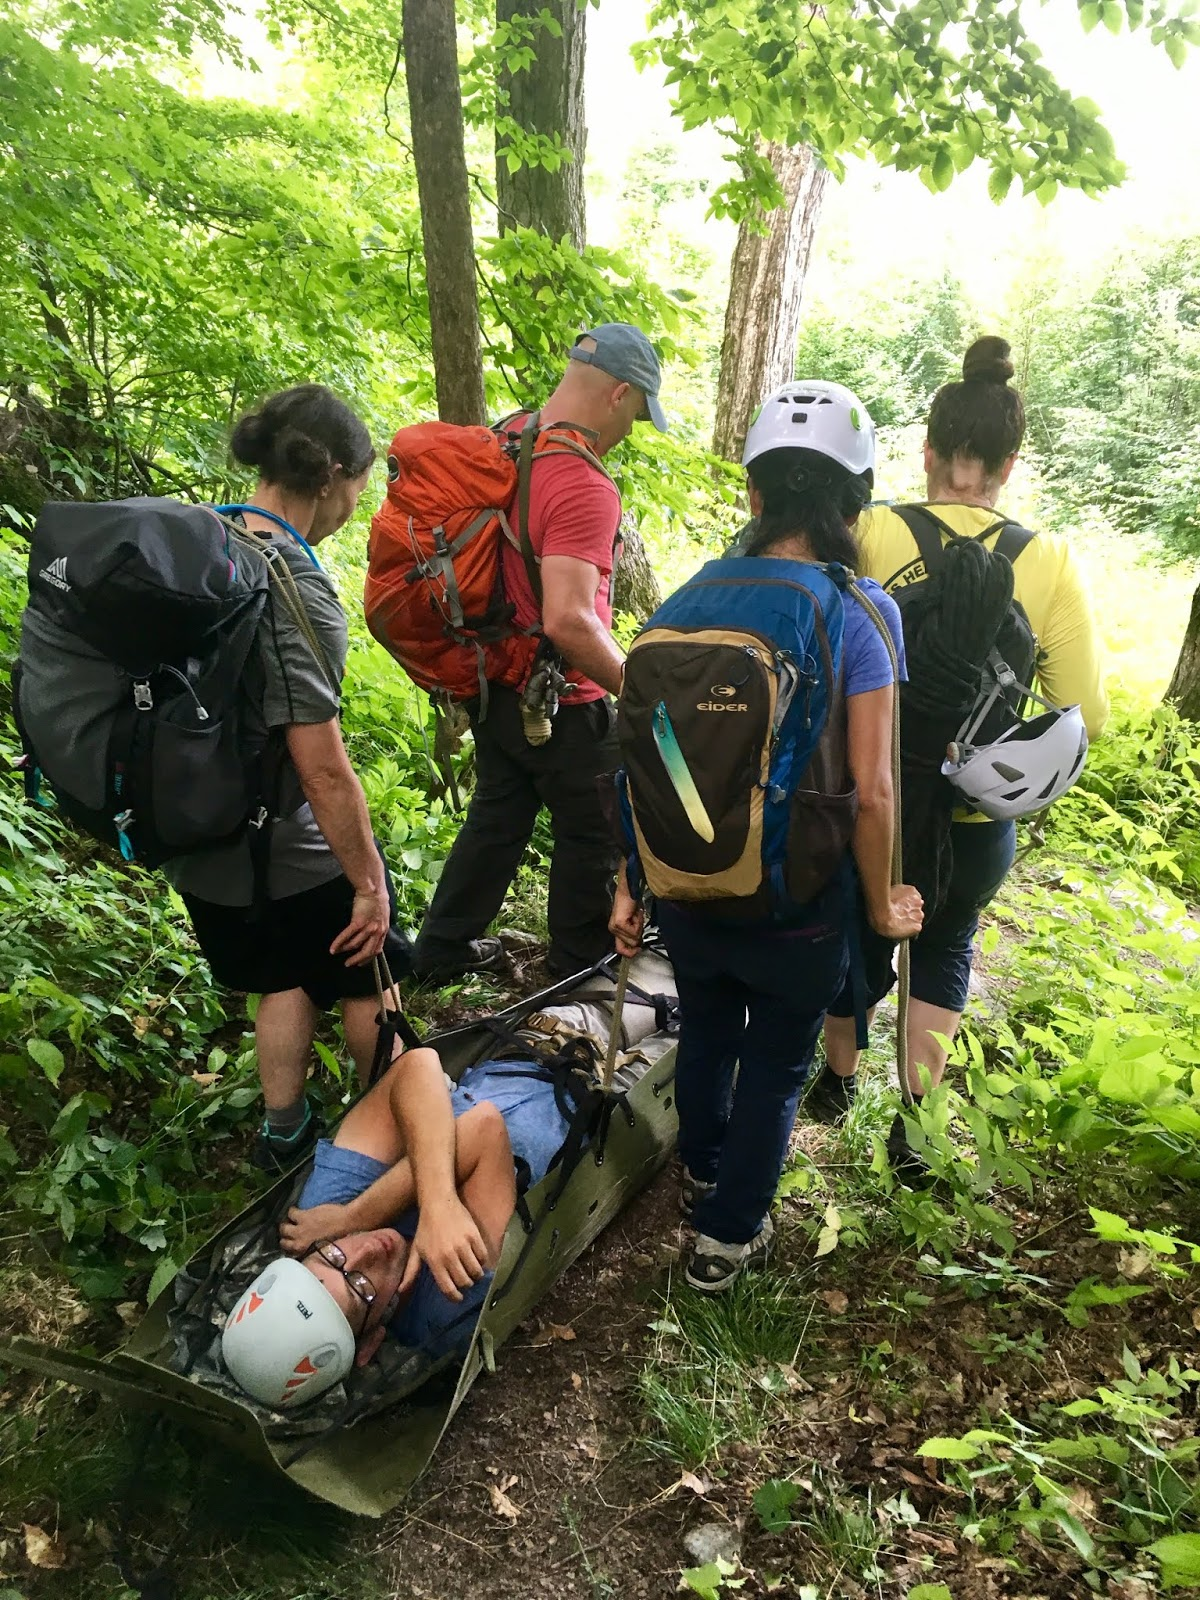 Four students in climbing gear carry another student down a hill on a stretcher. They are in a wooded area.